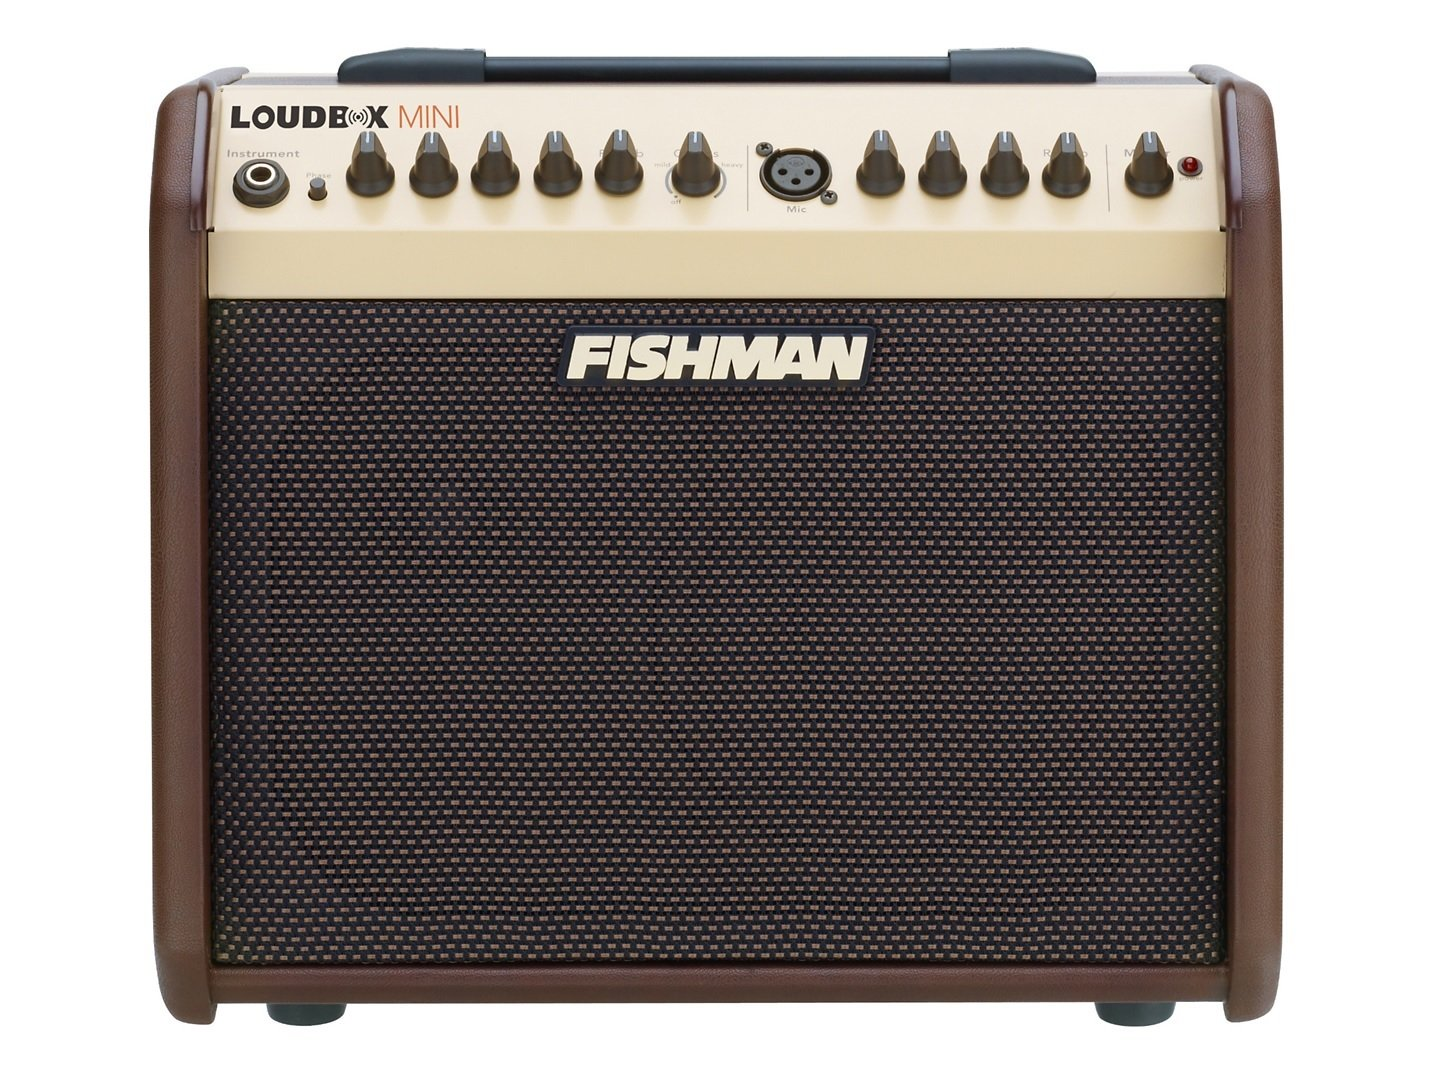 Fishman Loudbox Mini Acoustic Amp with Bluetooth